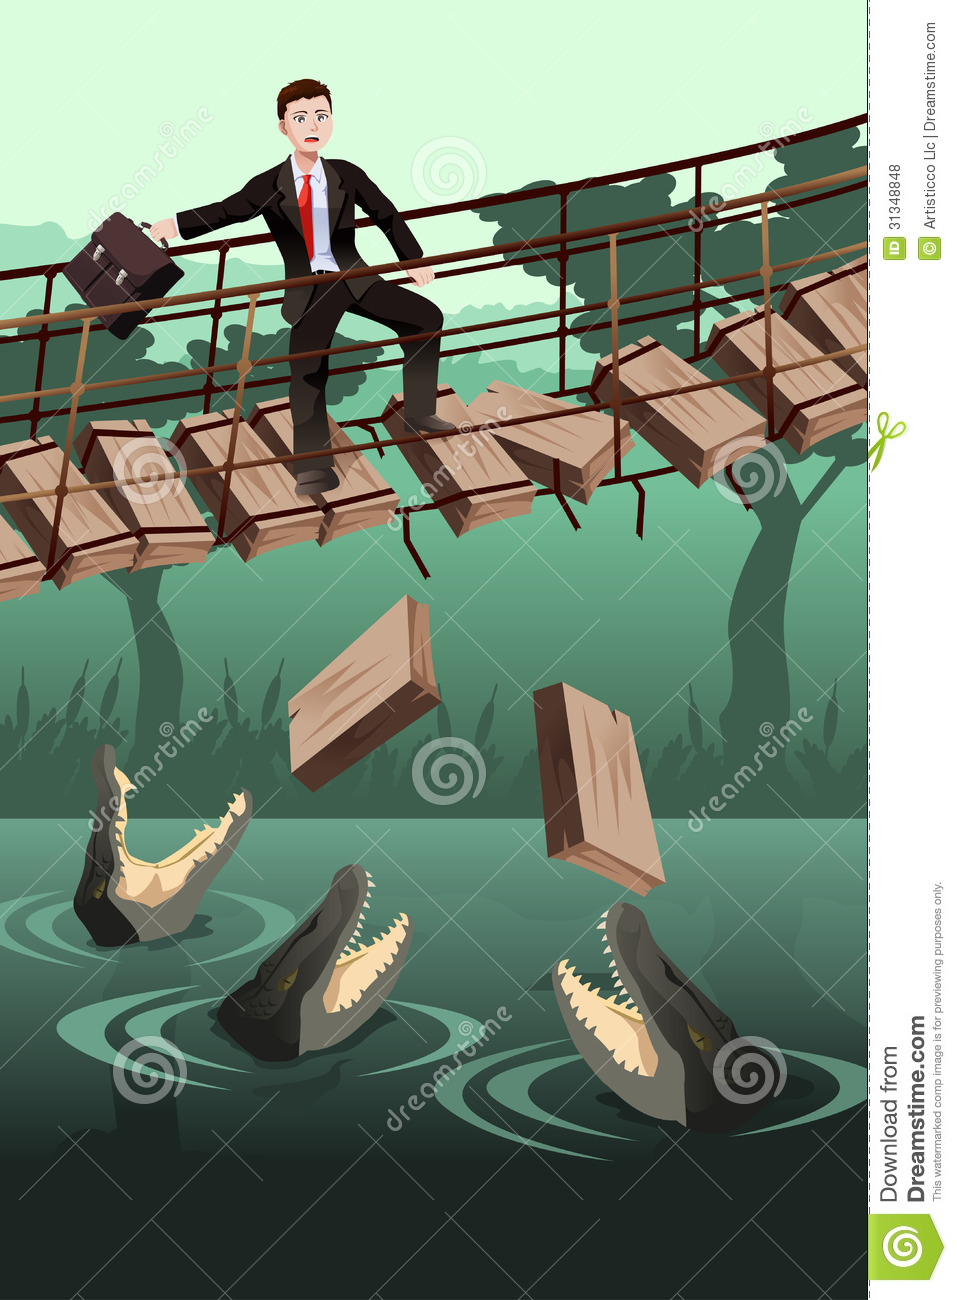 Business Risk Concept Royalty Free Stock Photos.